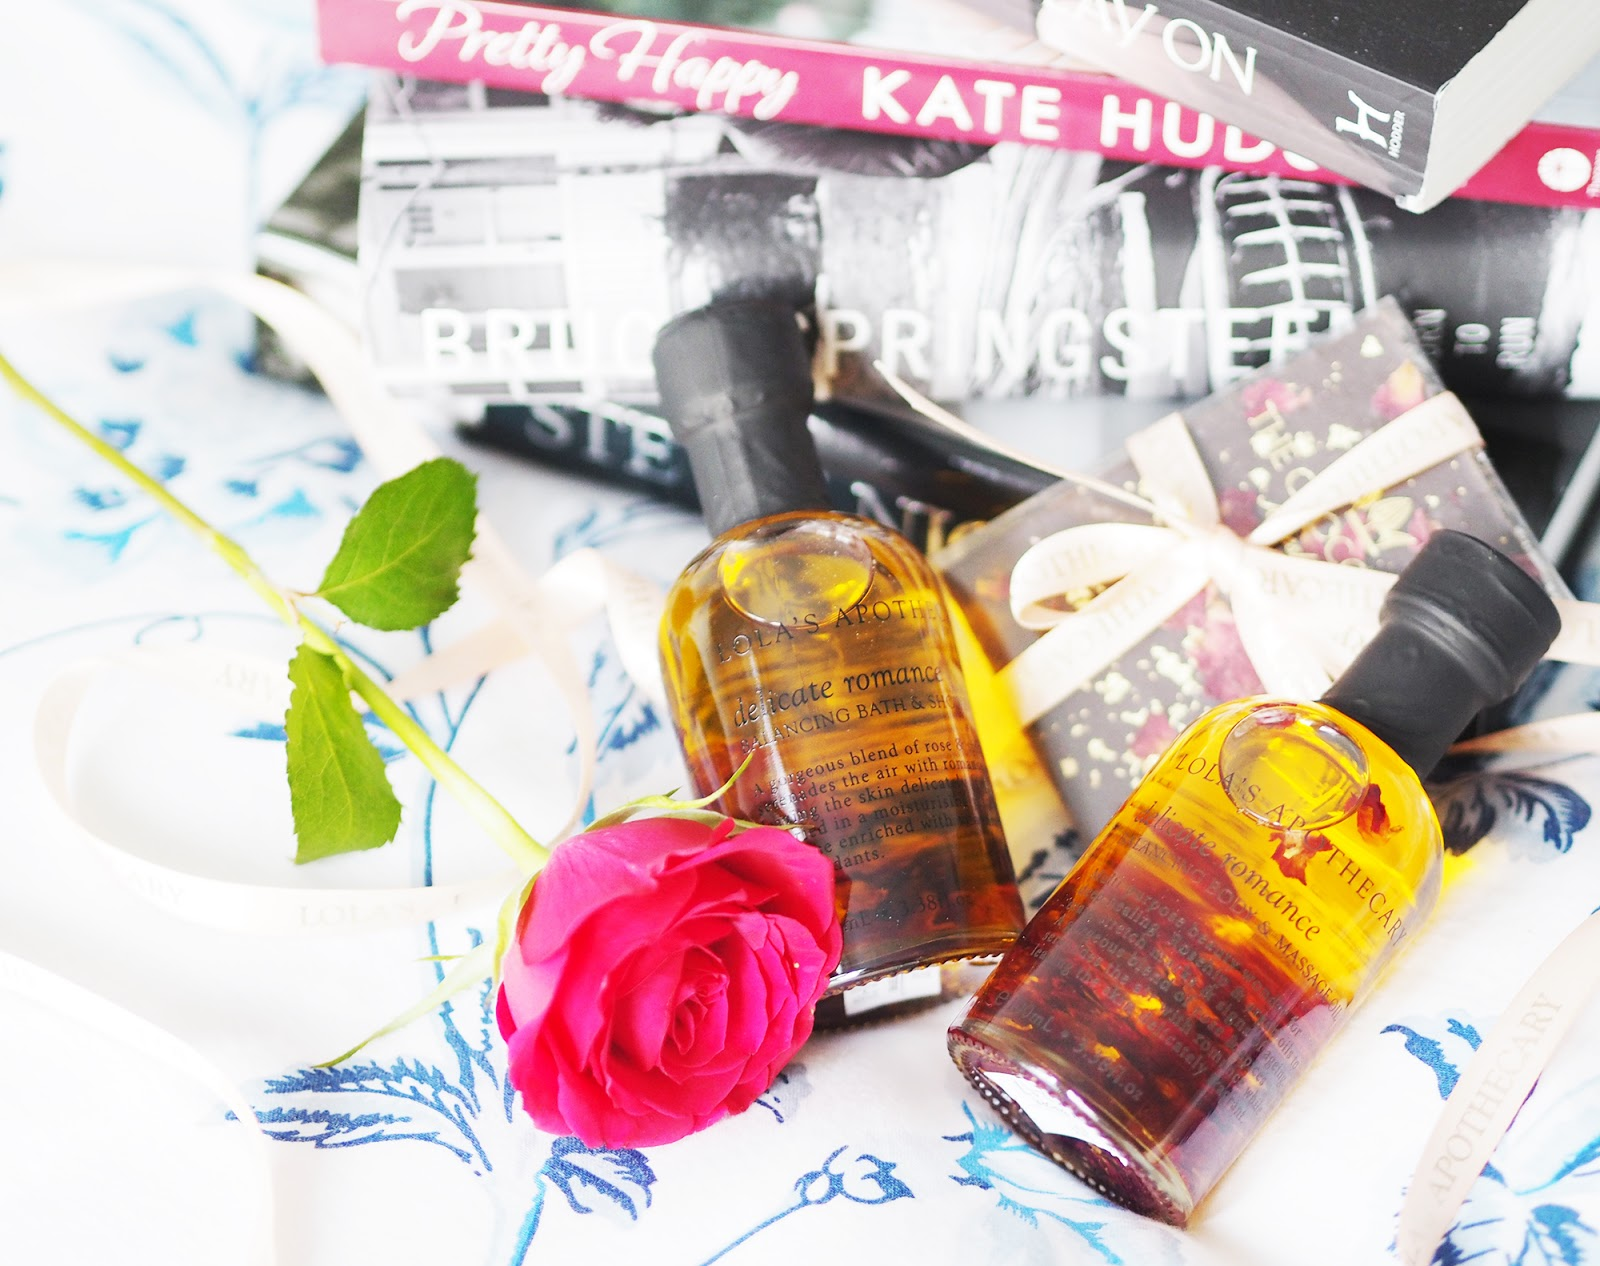 Valentine's gift ideas - Lola's Apothecary bath and body products